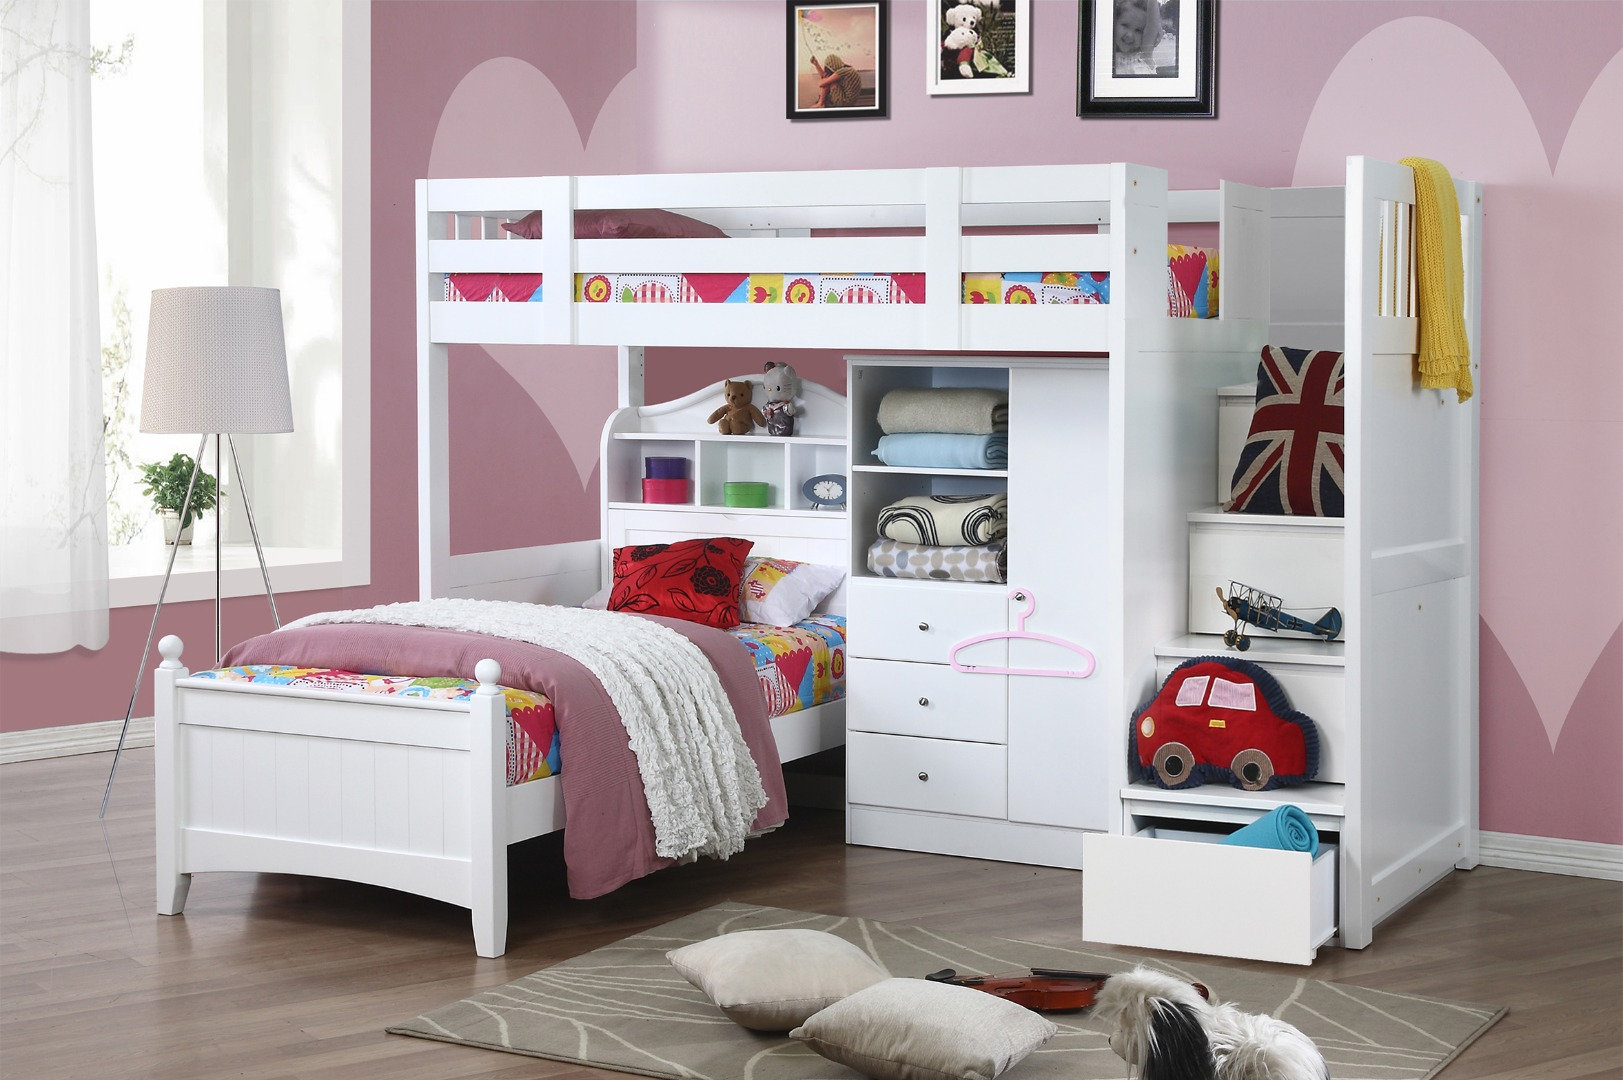 Kids Beds The 10 Essential Things You Need To Know When Buying A Children S Bed For The First Time The Childrens Furniture Company Blog